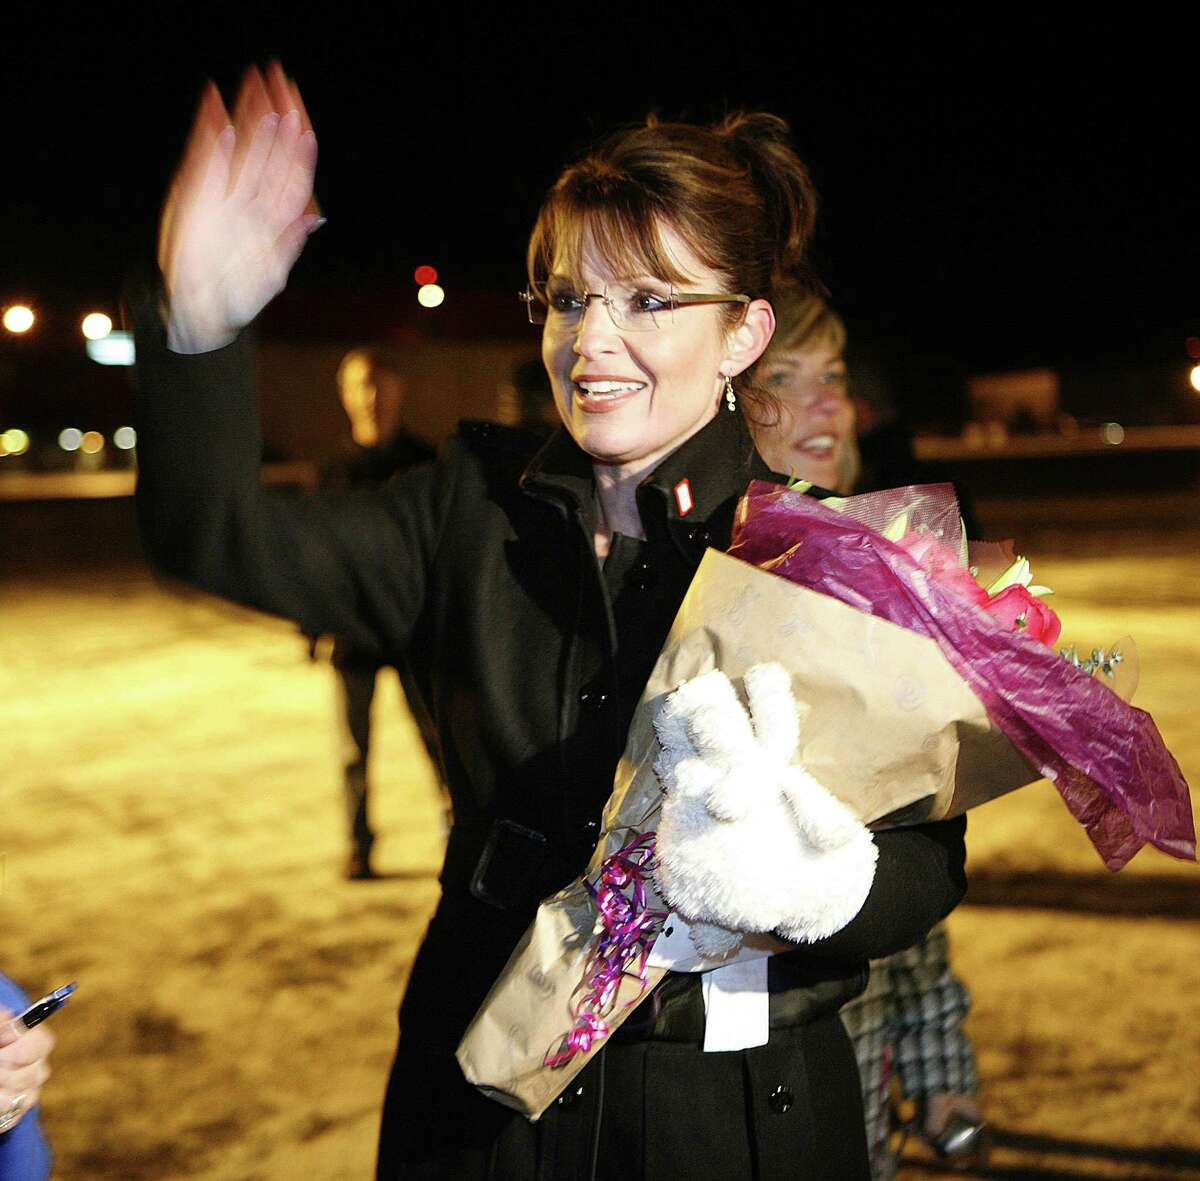 AP Photo/Al Grillo Former Alaska Gov. Sarah Palin greets supporters after returning to Anchorage, Alaska in 2008.